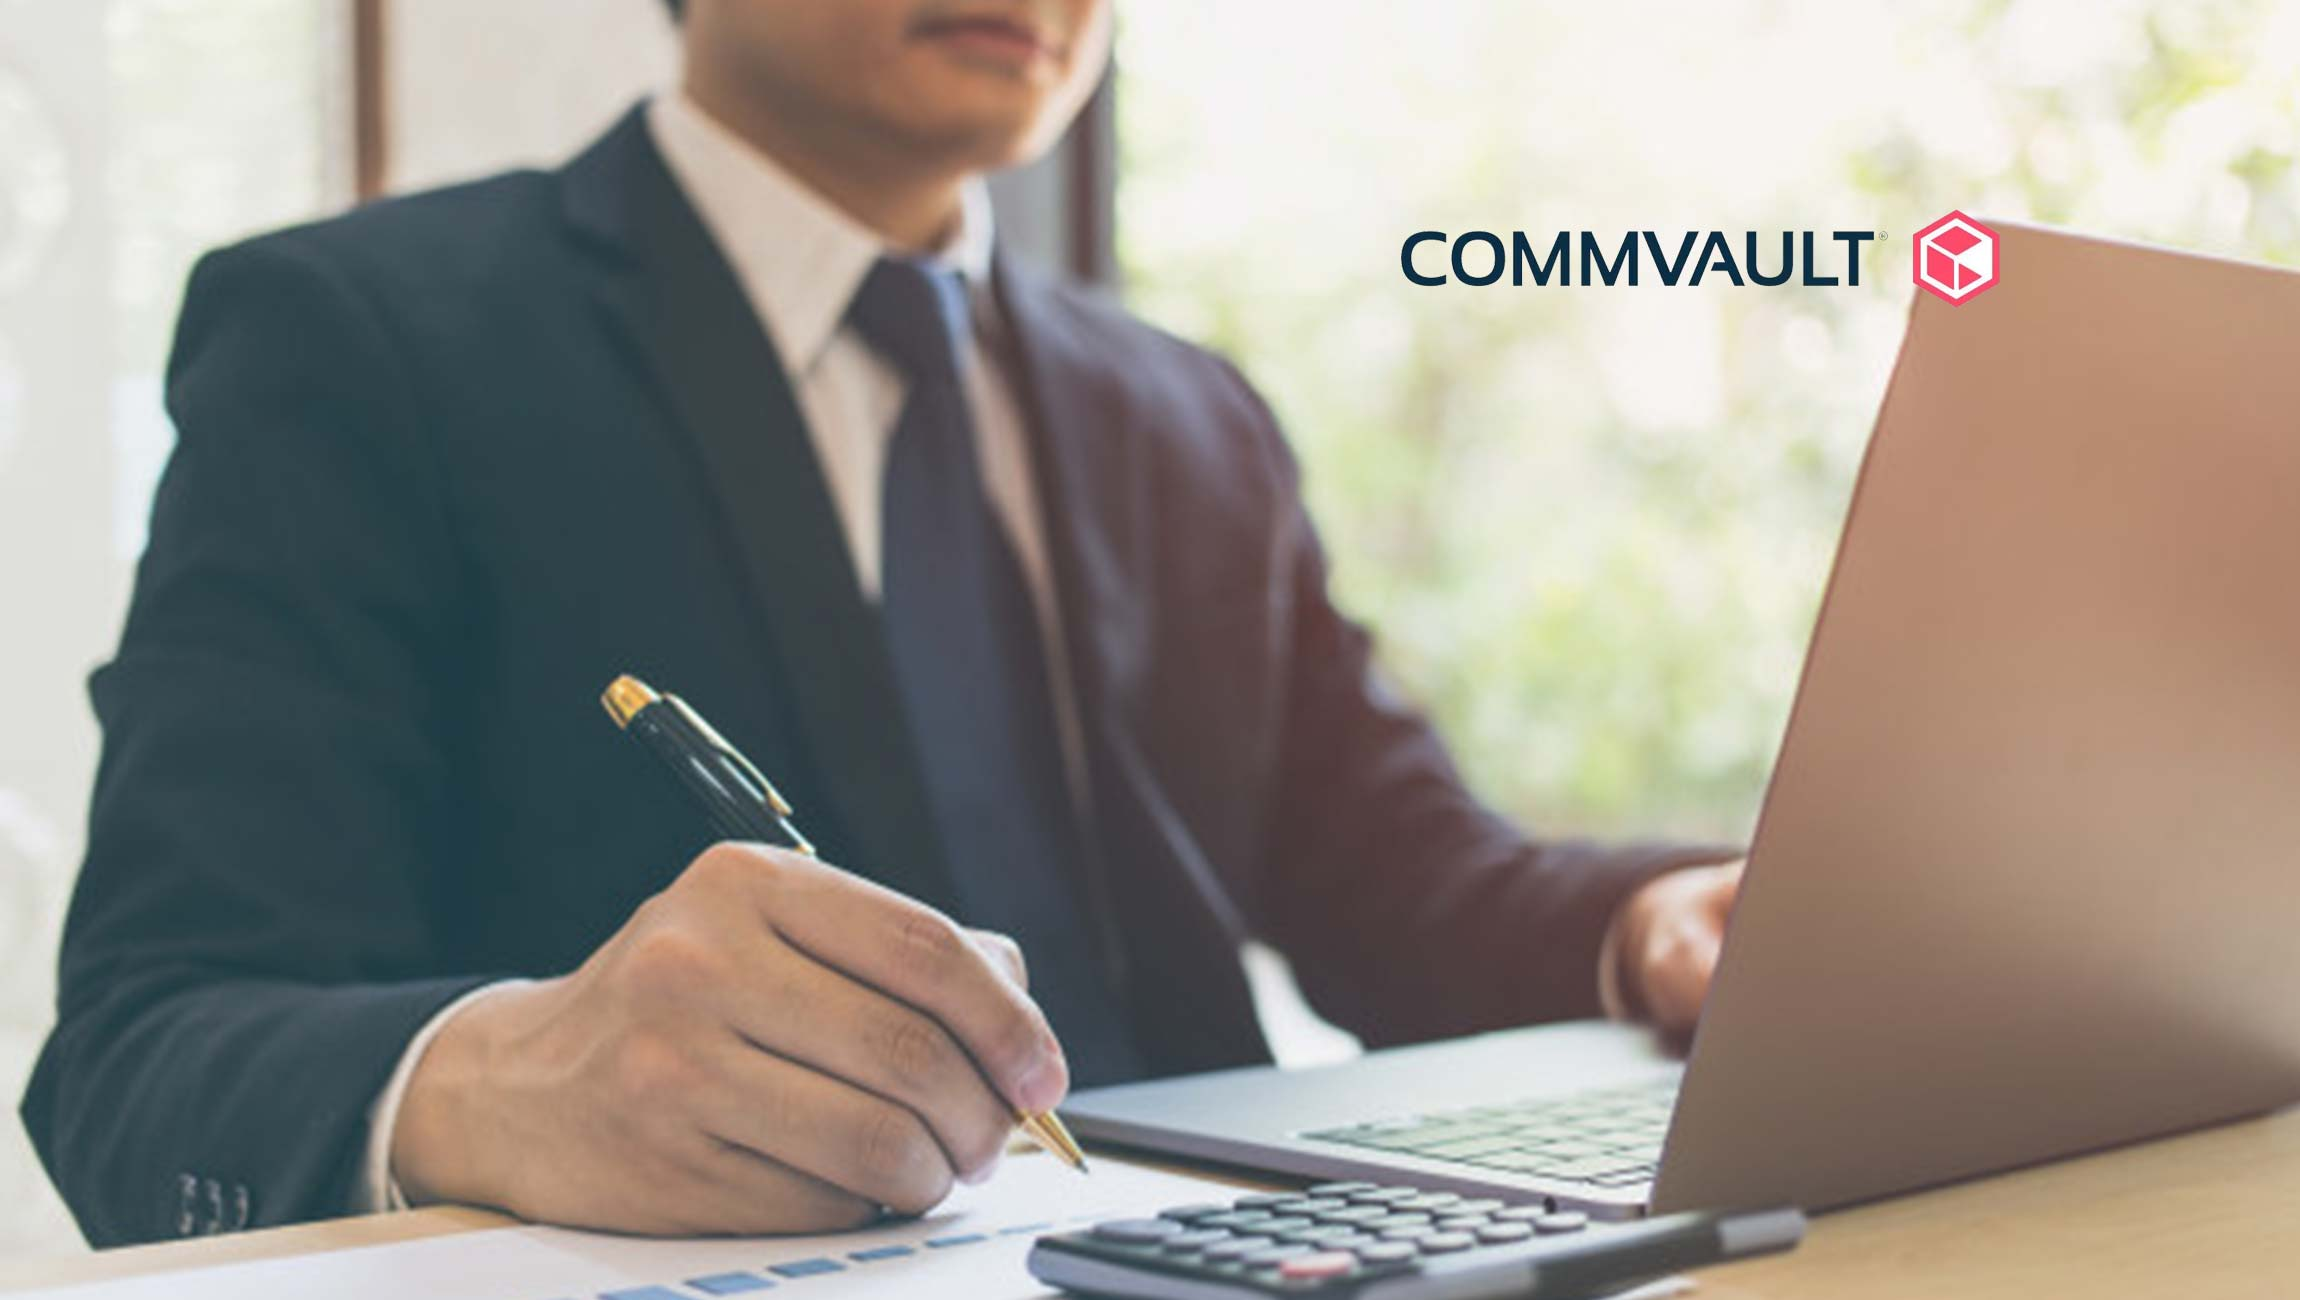 Commvault Named 2020 HPE Momentum Storage Partner of the Year